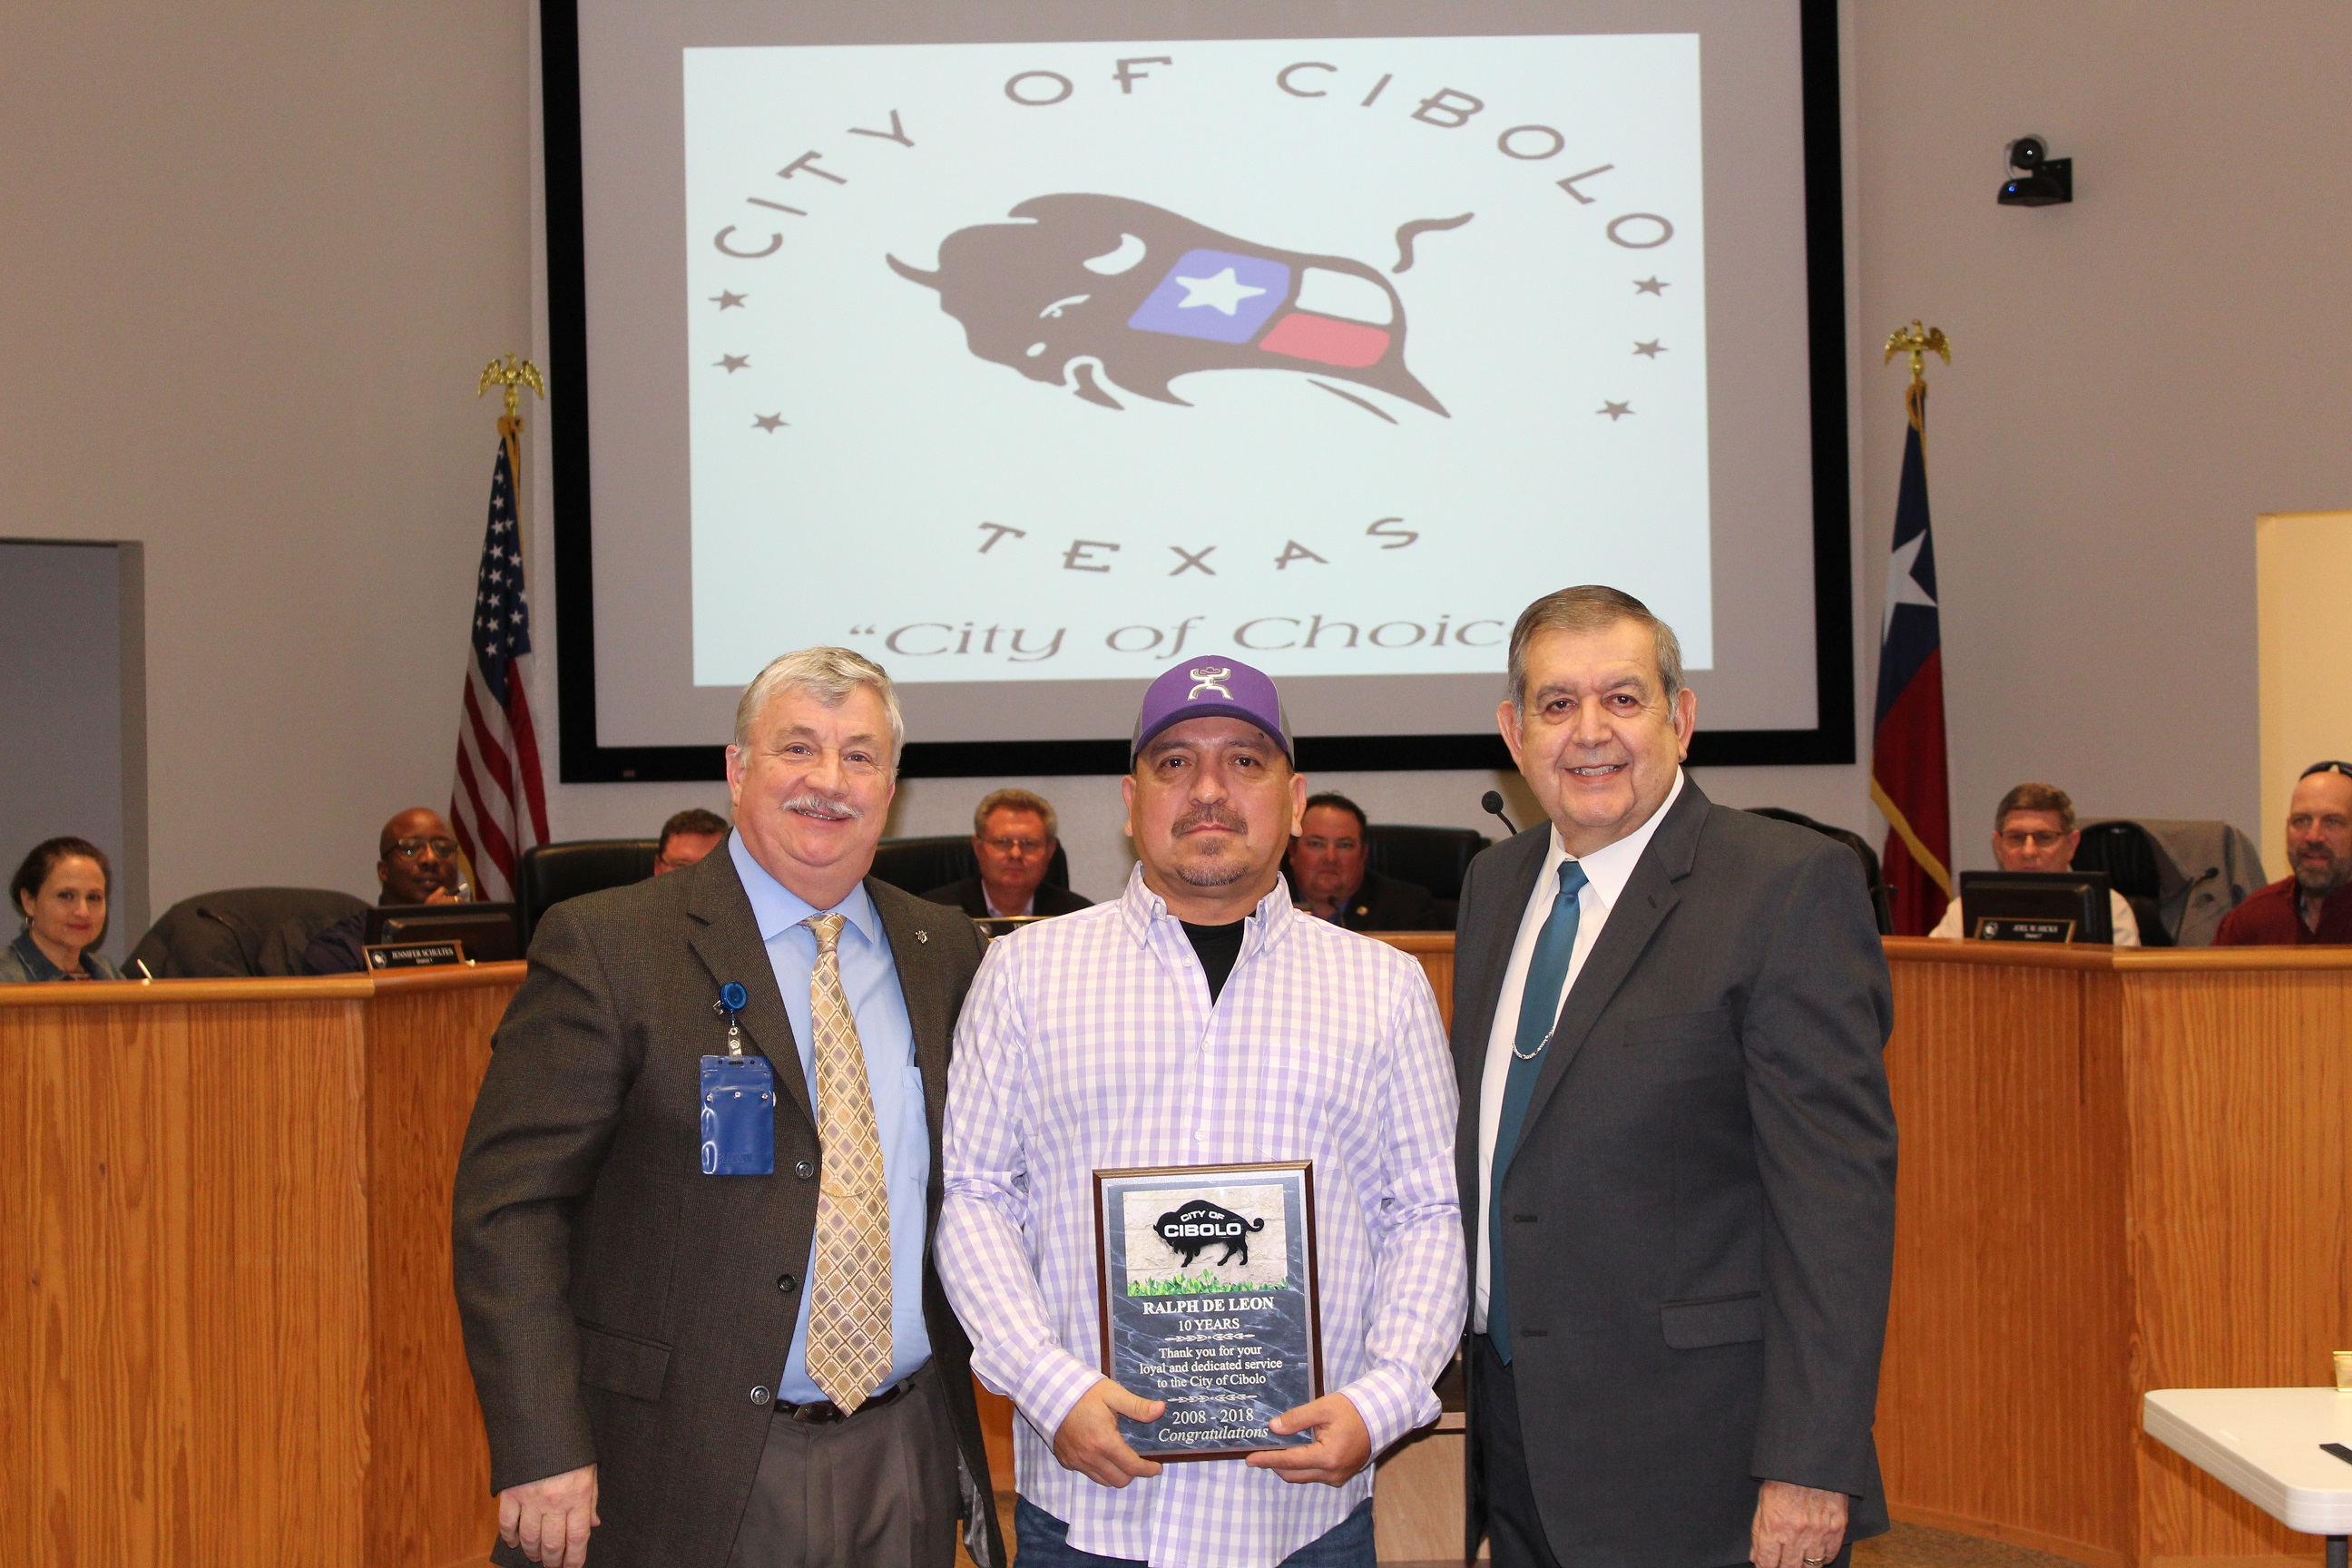 Presentation to Ralph Deleon for 10 years of Service to the City of Cibolo